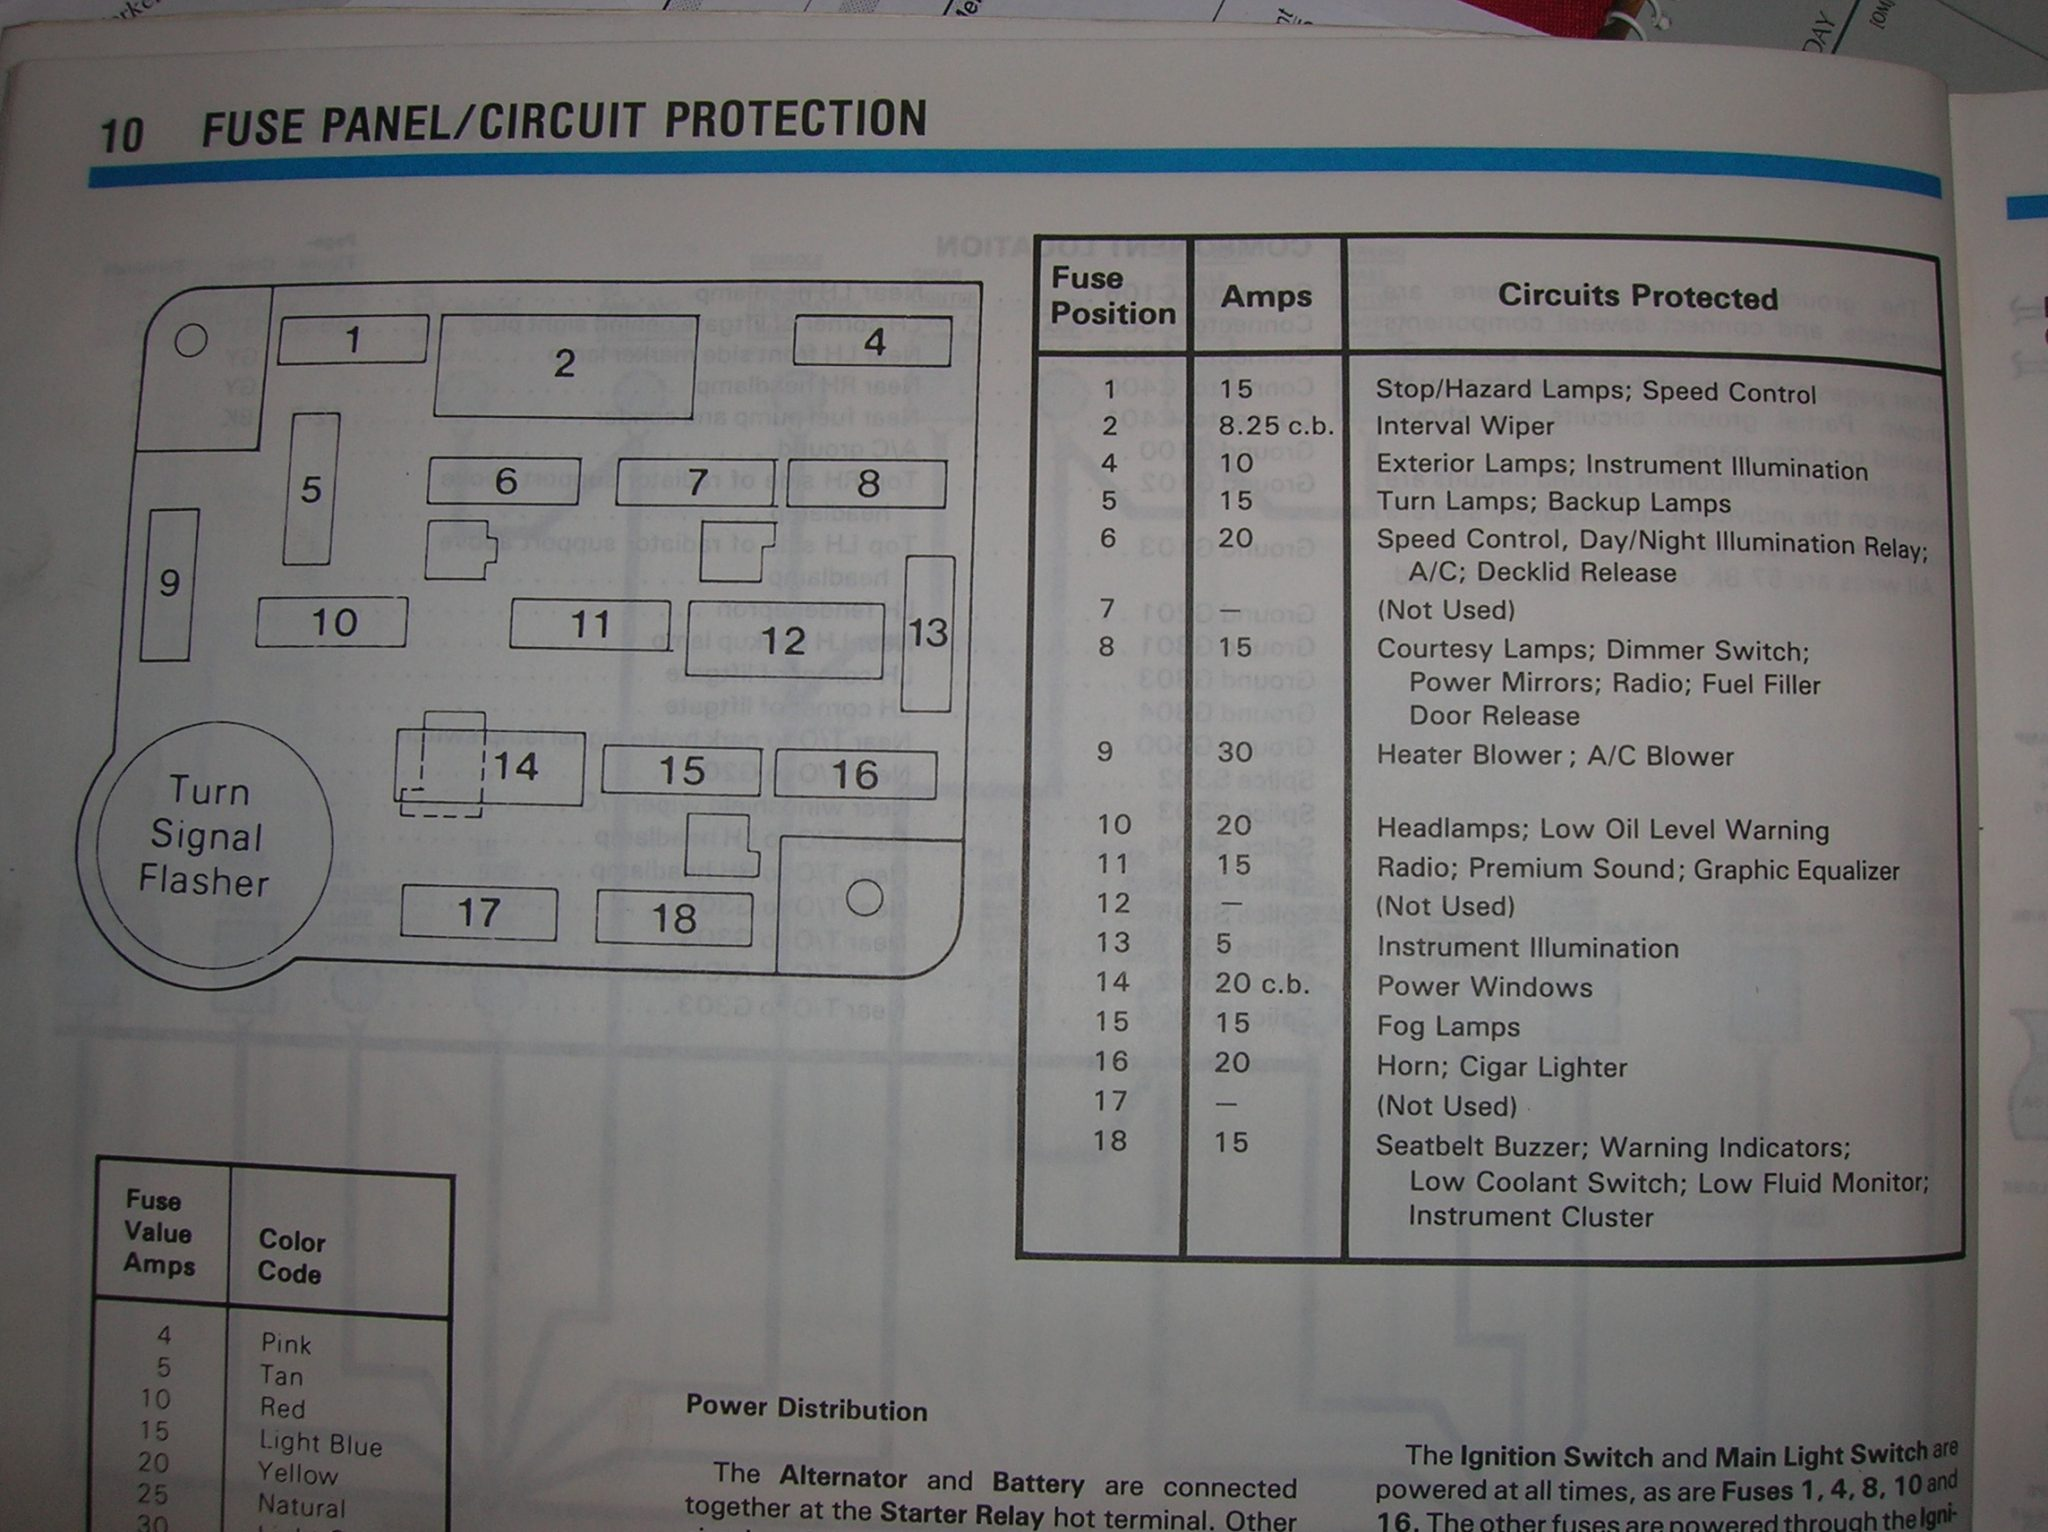 1979 1993 Ford Mustang 2000 Mustang Fuse Panel 79 Mustang Fuse Panel Diagram